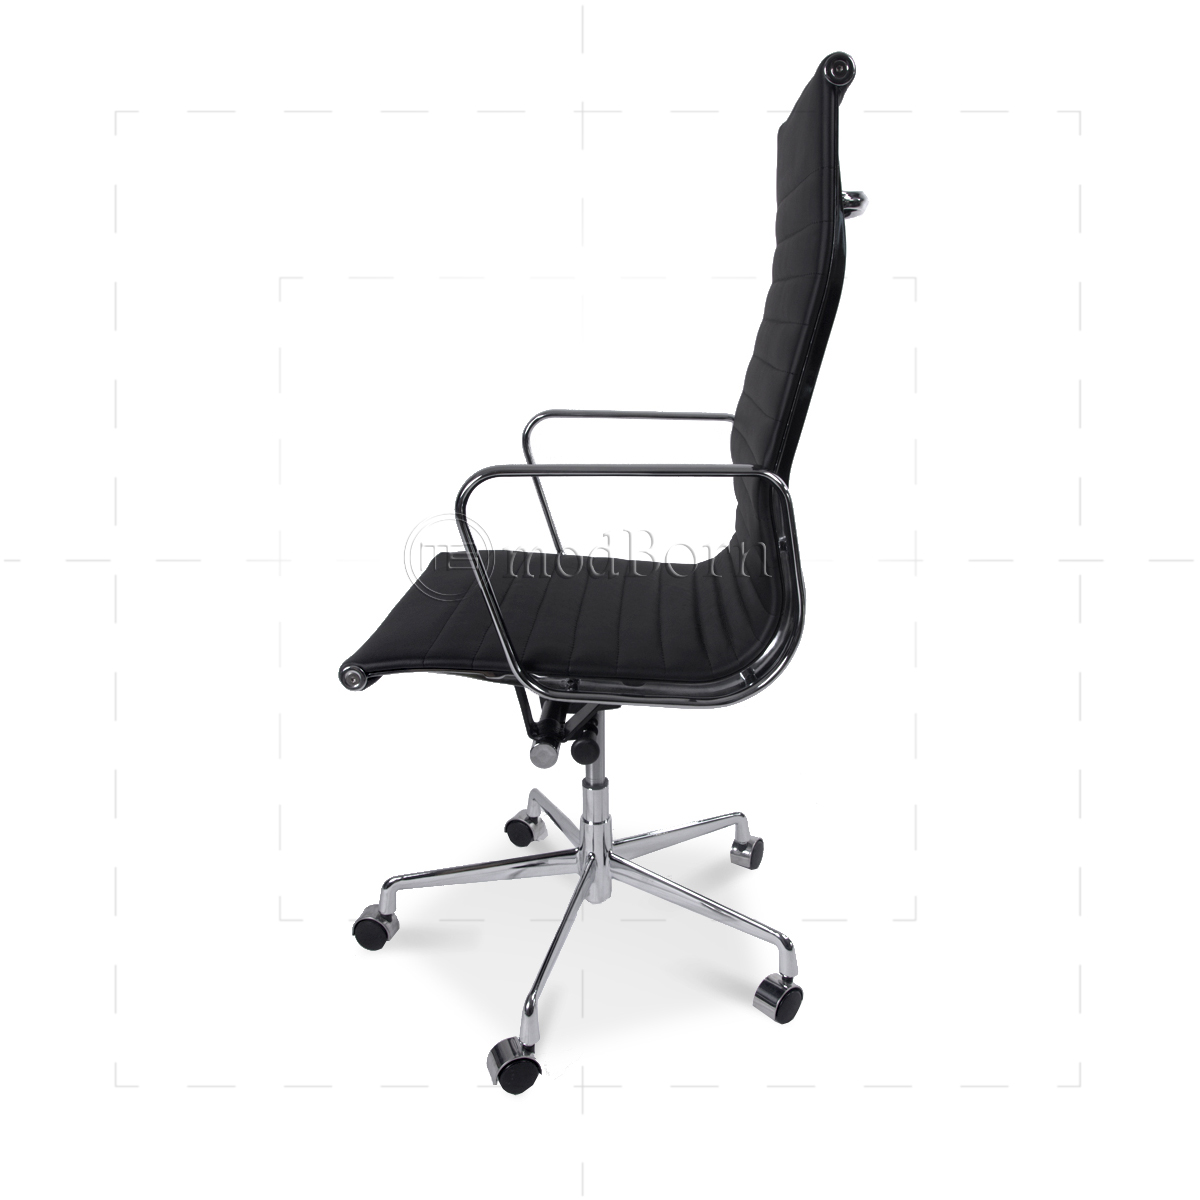 ea119 eames style office chair high back ribbed black leather replica. Black Bedroom Furniture Sets. Home Design Ideas